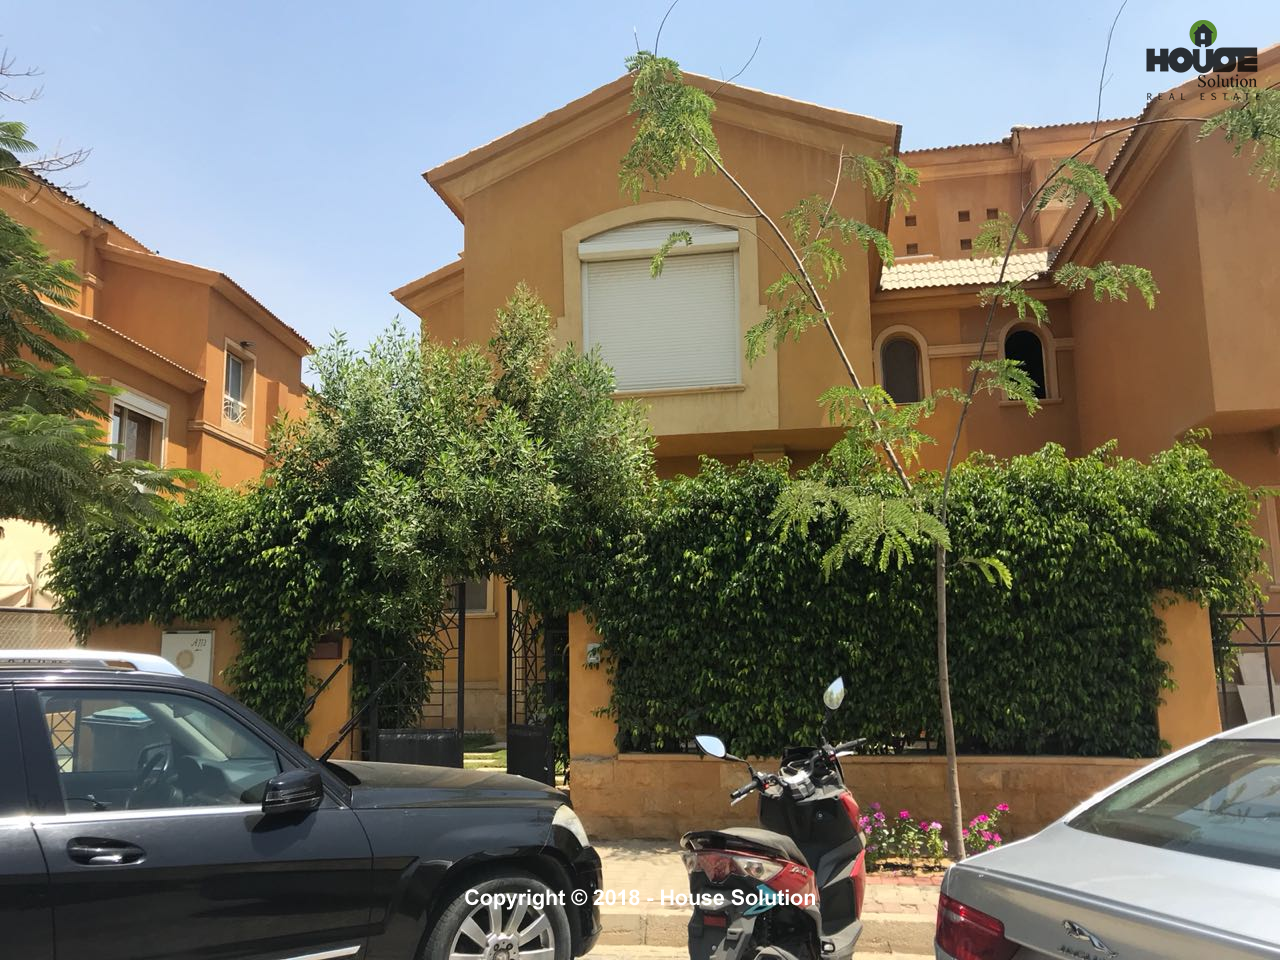 Villas For Sale In New Cairo Dyar -#15